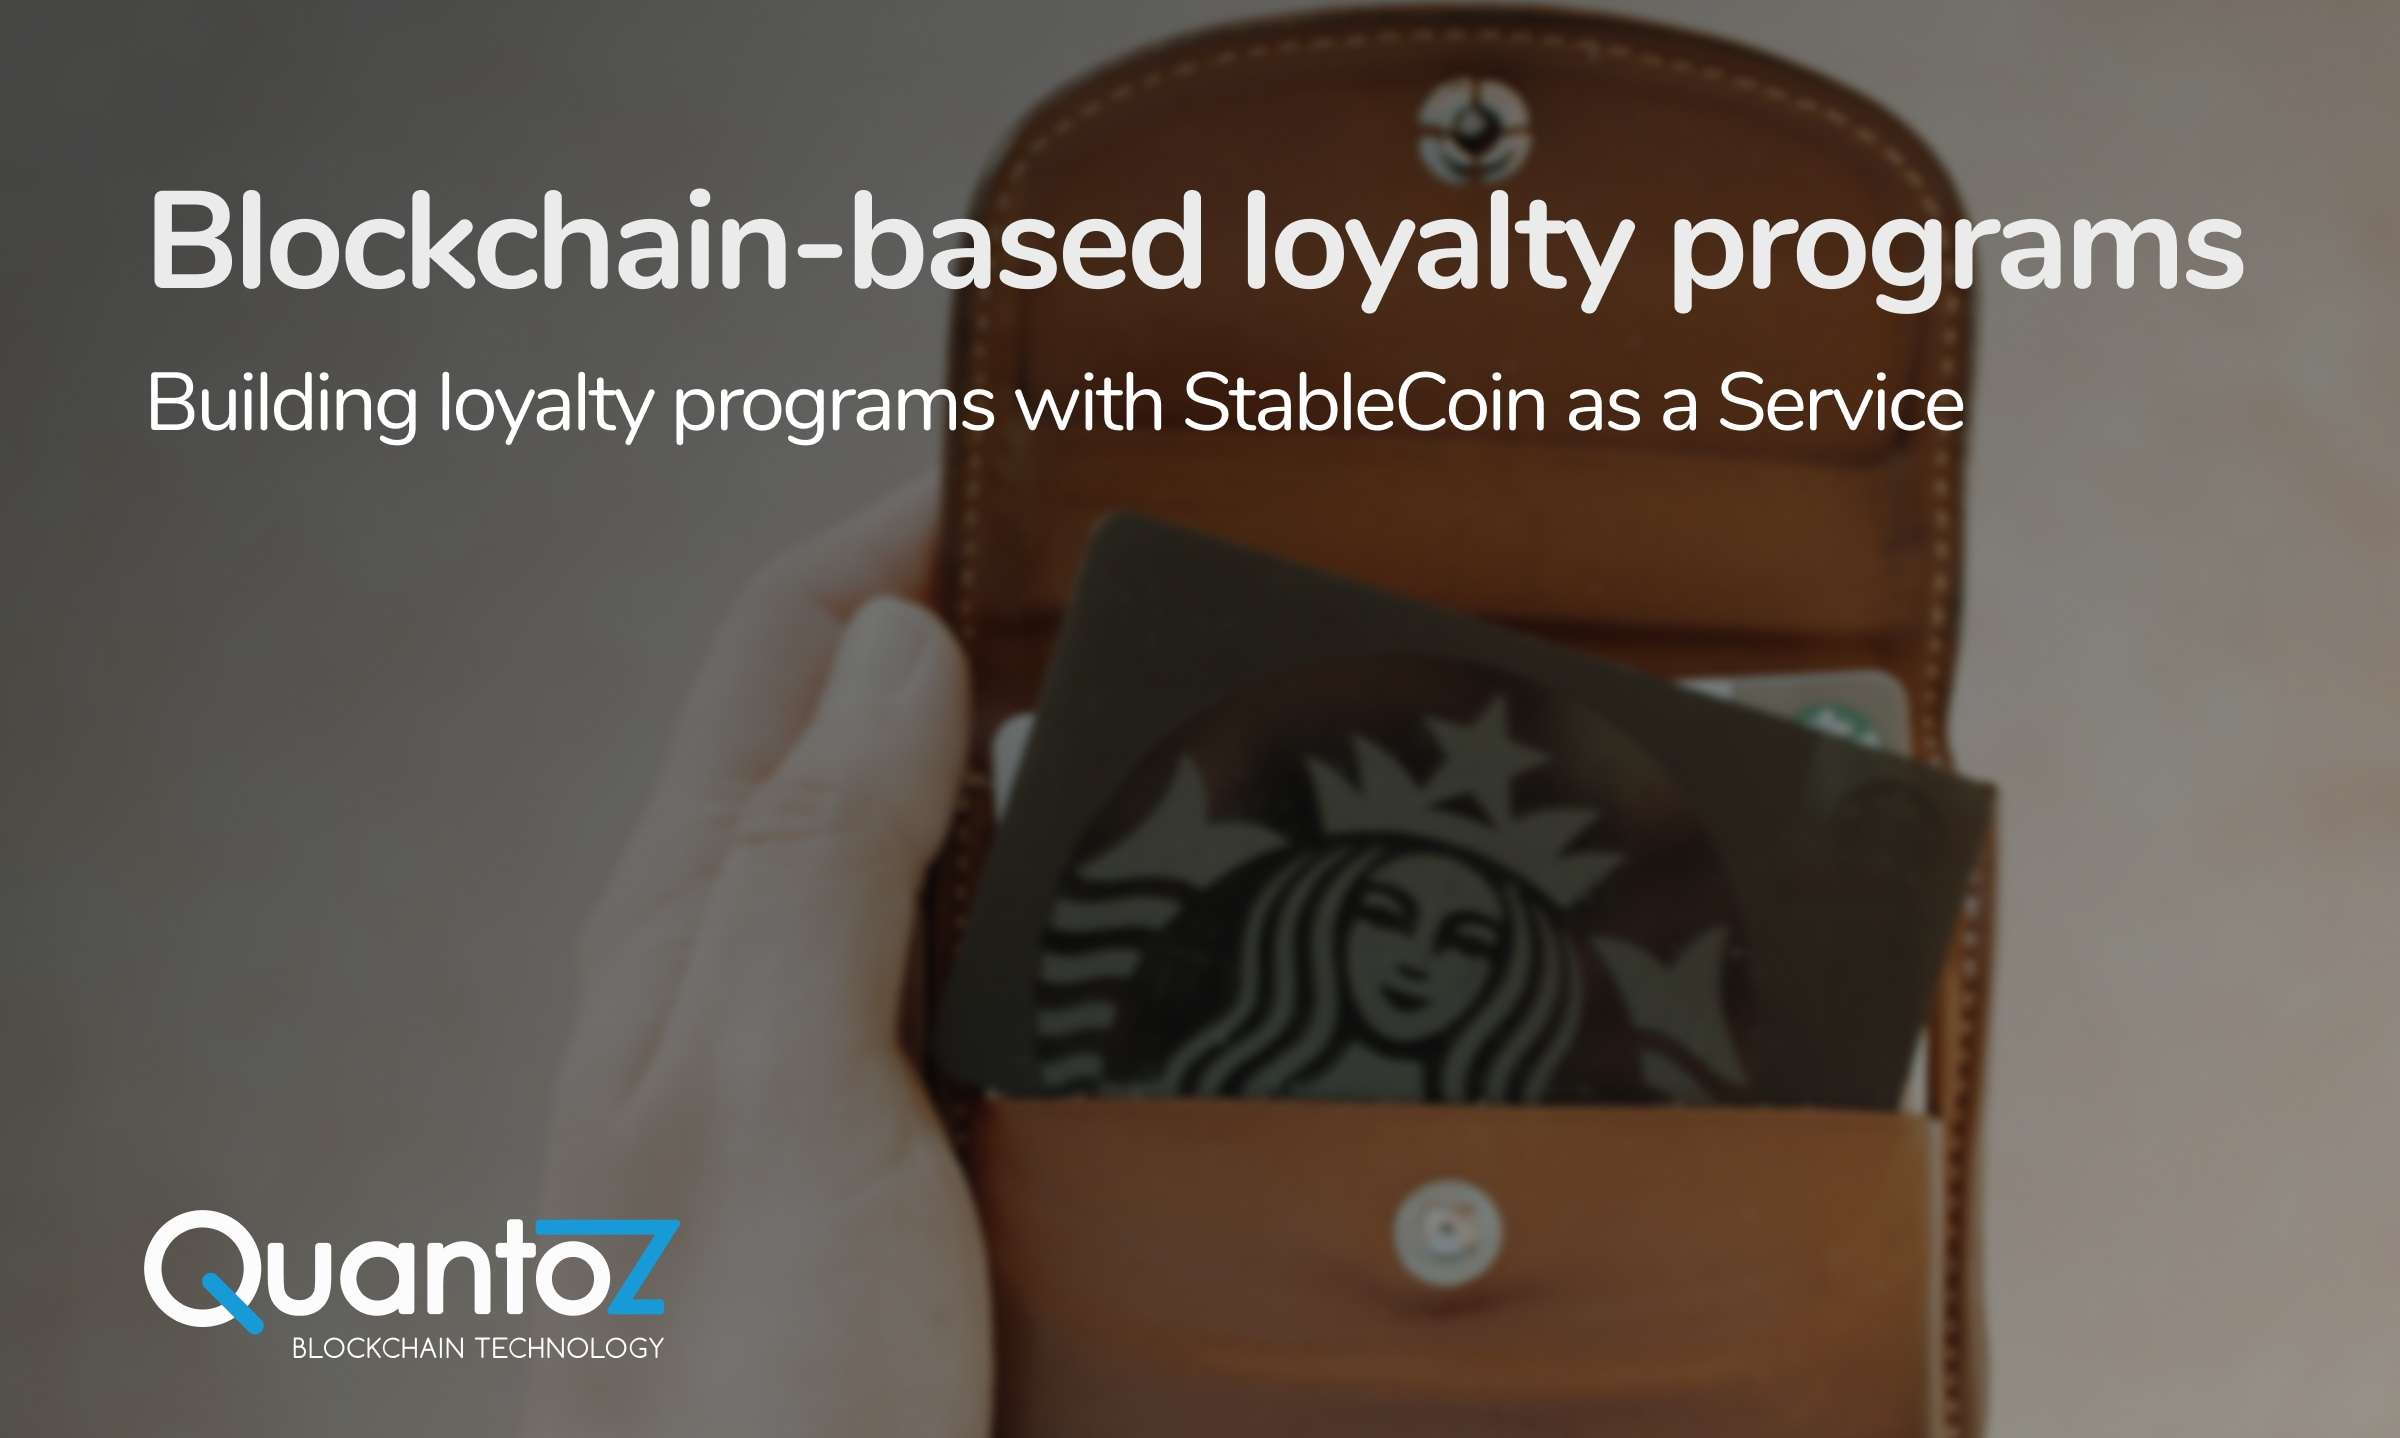 Blockchain-based loyalty programs